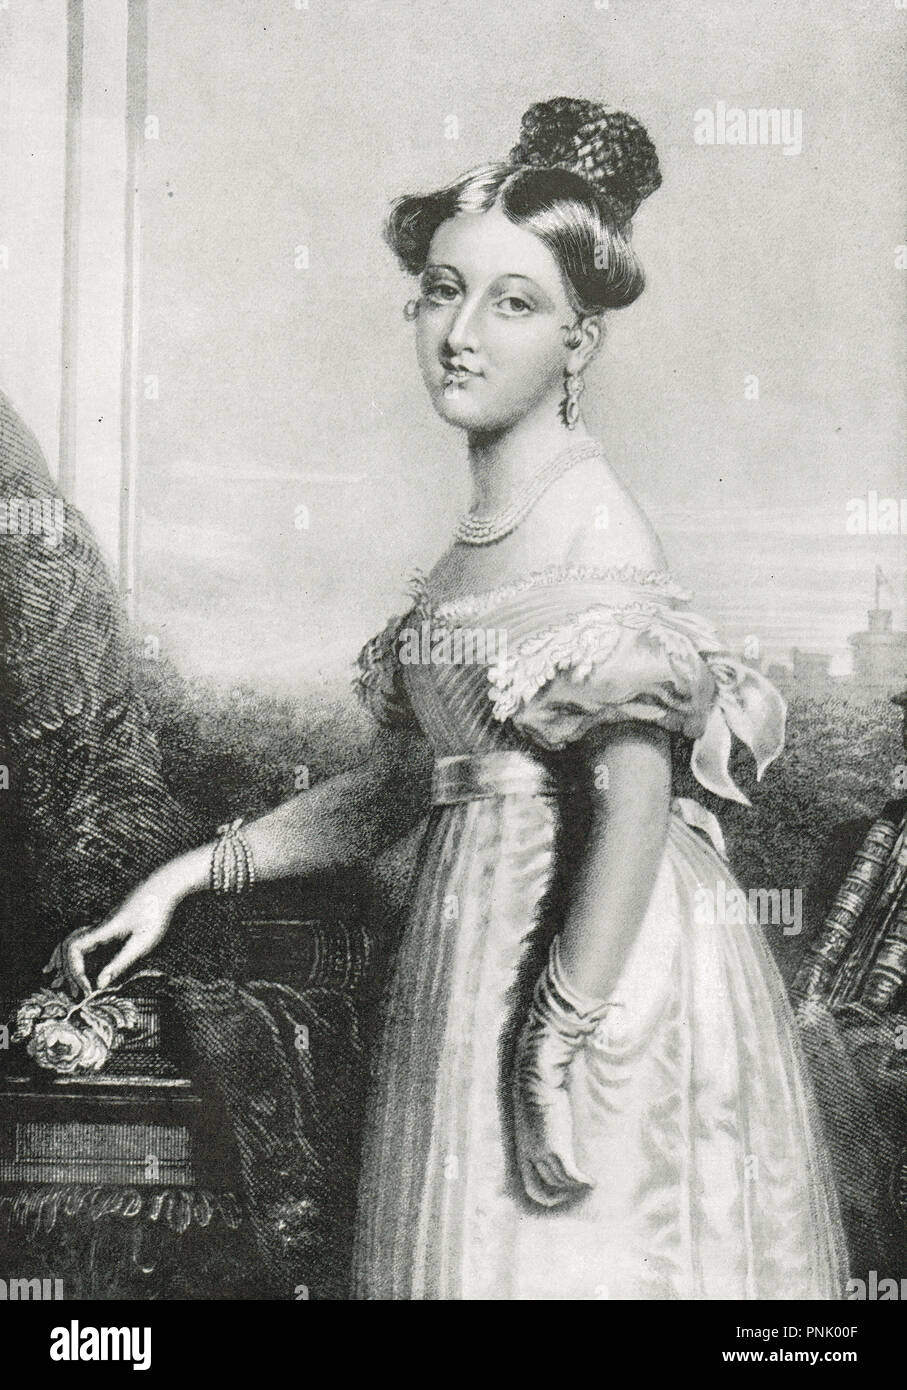 Princess Victoria, aged 16, future Queen Victoria as a young girl.  Later to be Queen of the United Kingdom of Great Britain and Ireland, and Empress of India - Stock Image